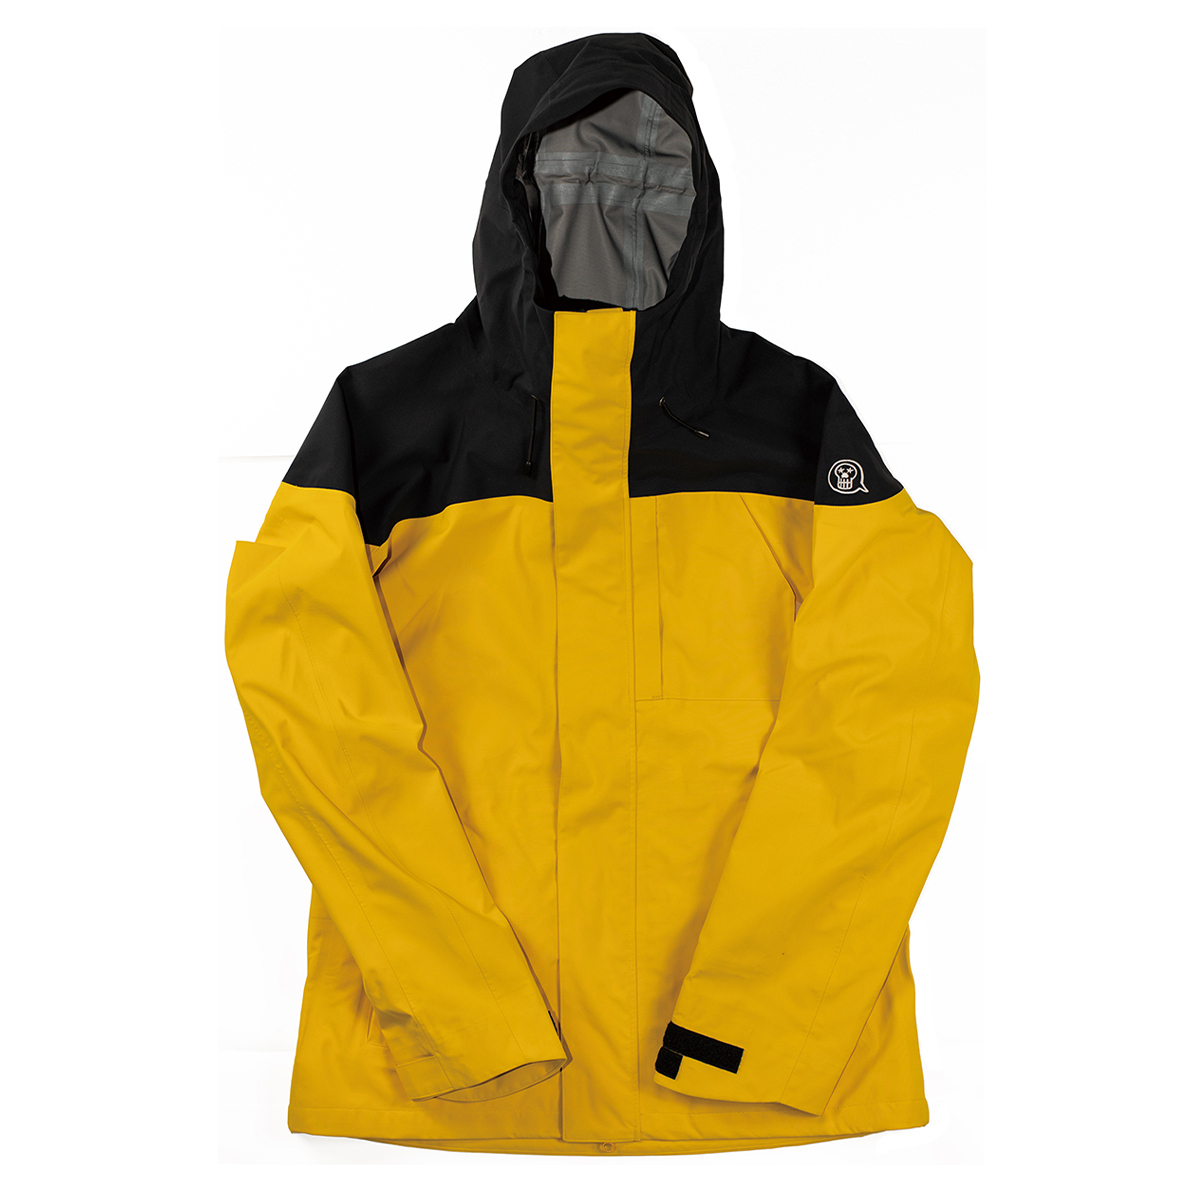 unfudge snow wear // PEEP JACKET // YELLOW //  1920PJY